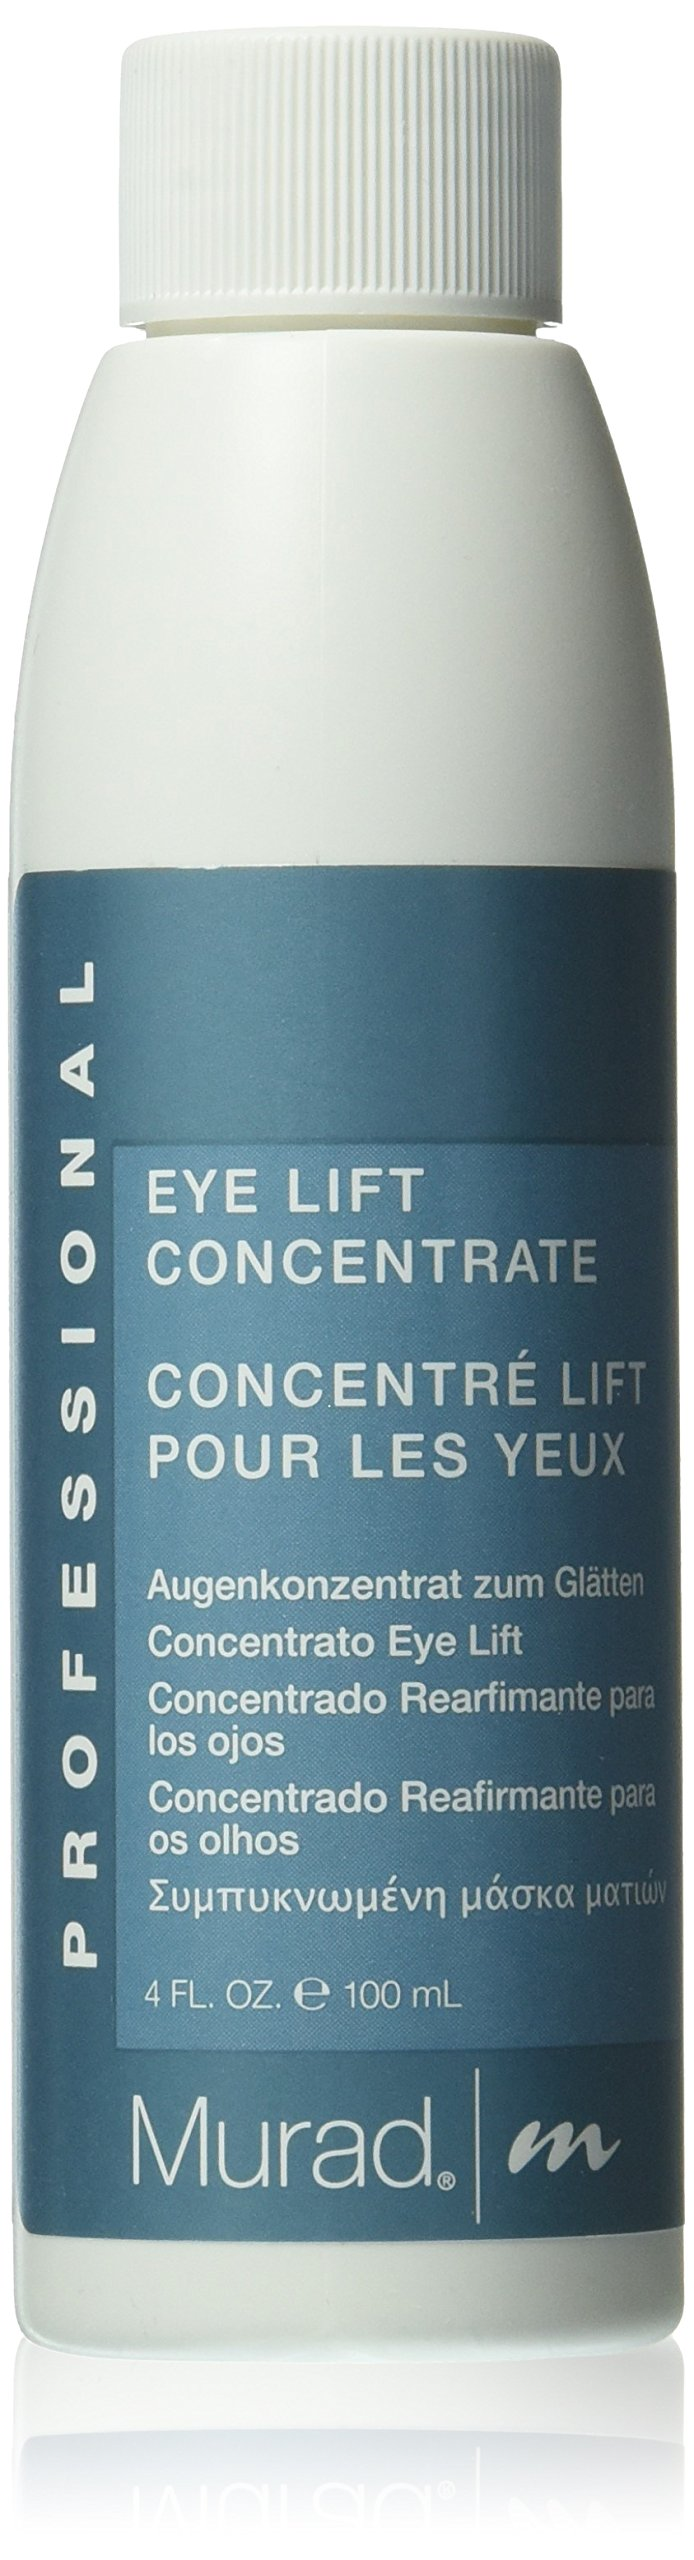 Murad Eye Lift Concentrate Cream, 4 Ounce